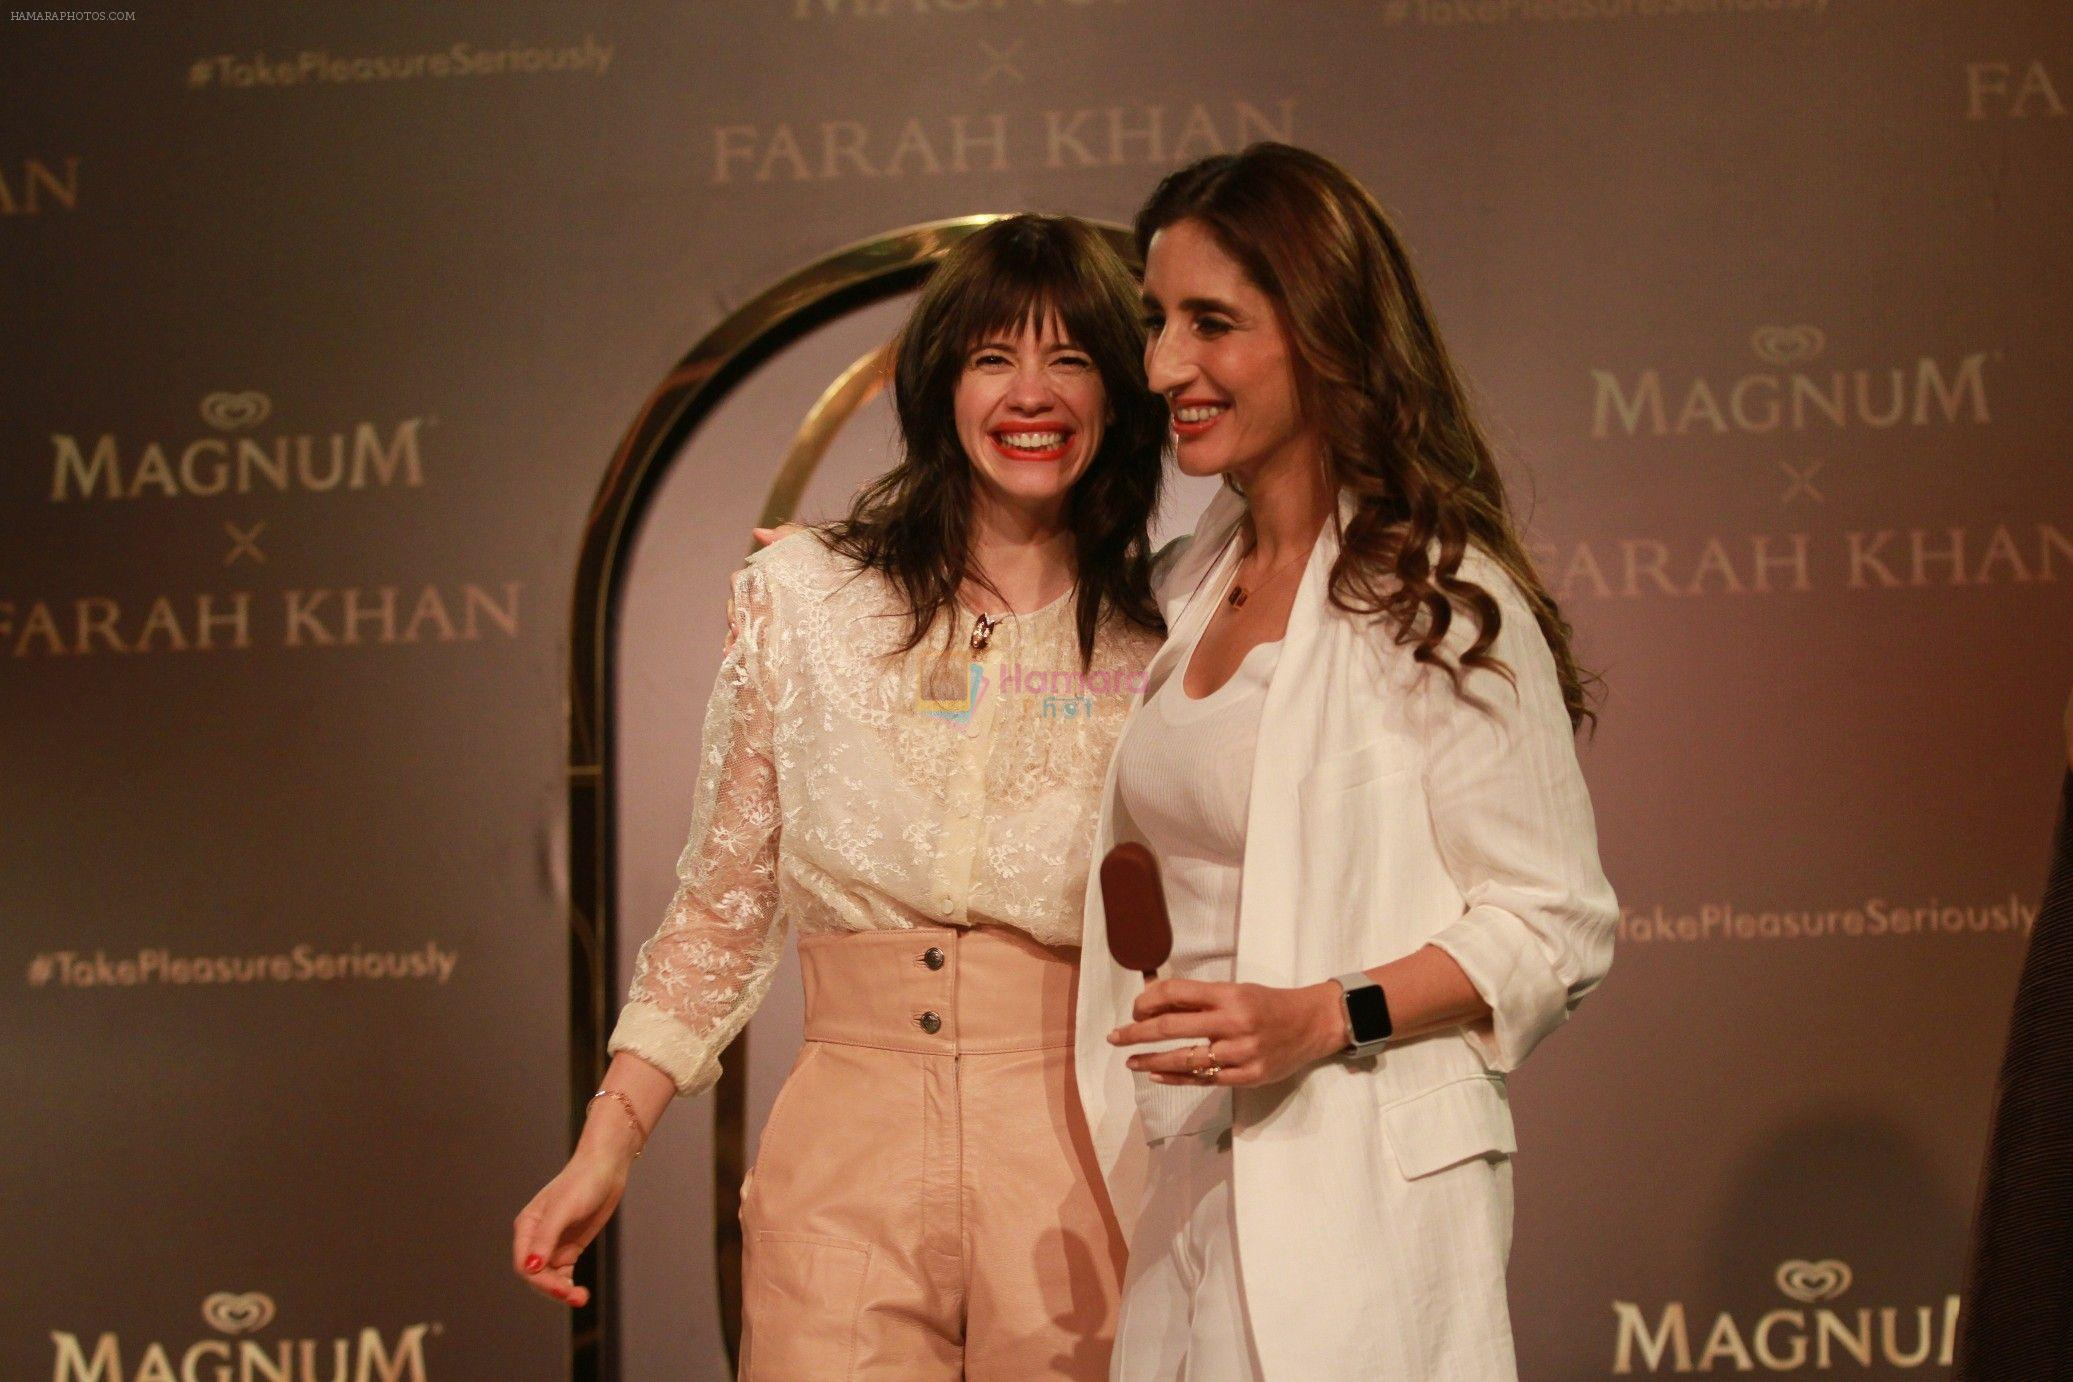 Kalki Koechlin, Farah Khan Ali unveil a collection of jewels in collaboration with Magnum on 24th April 2018